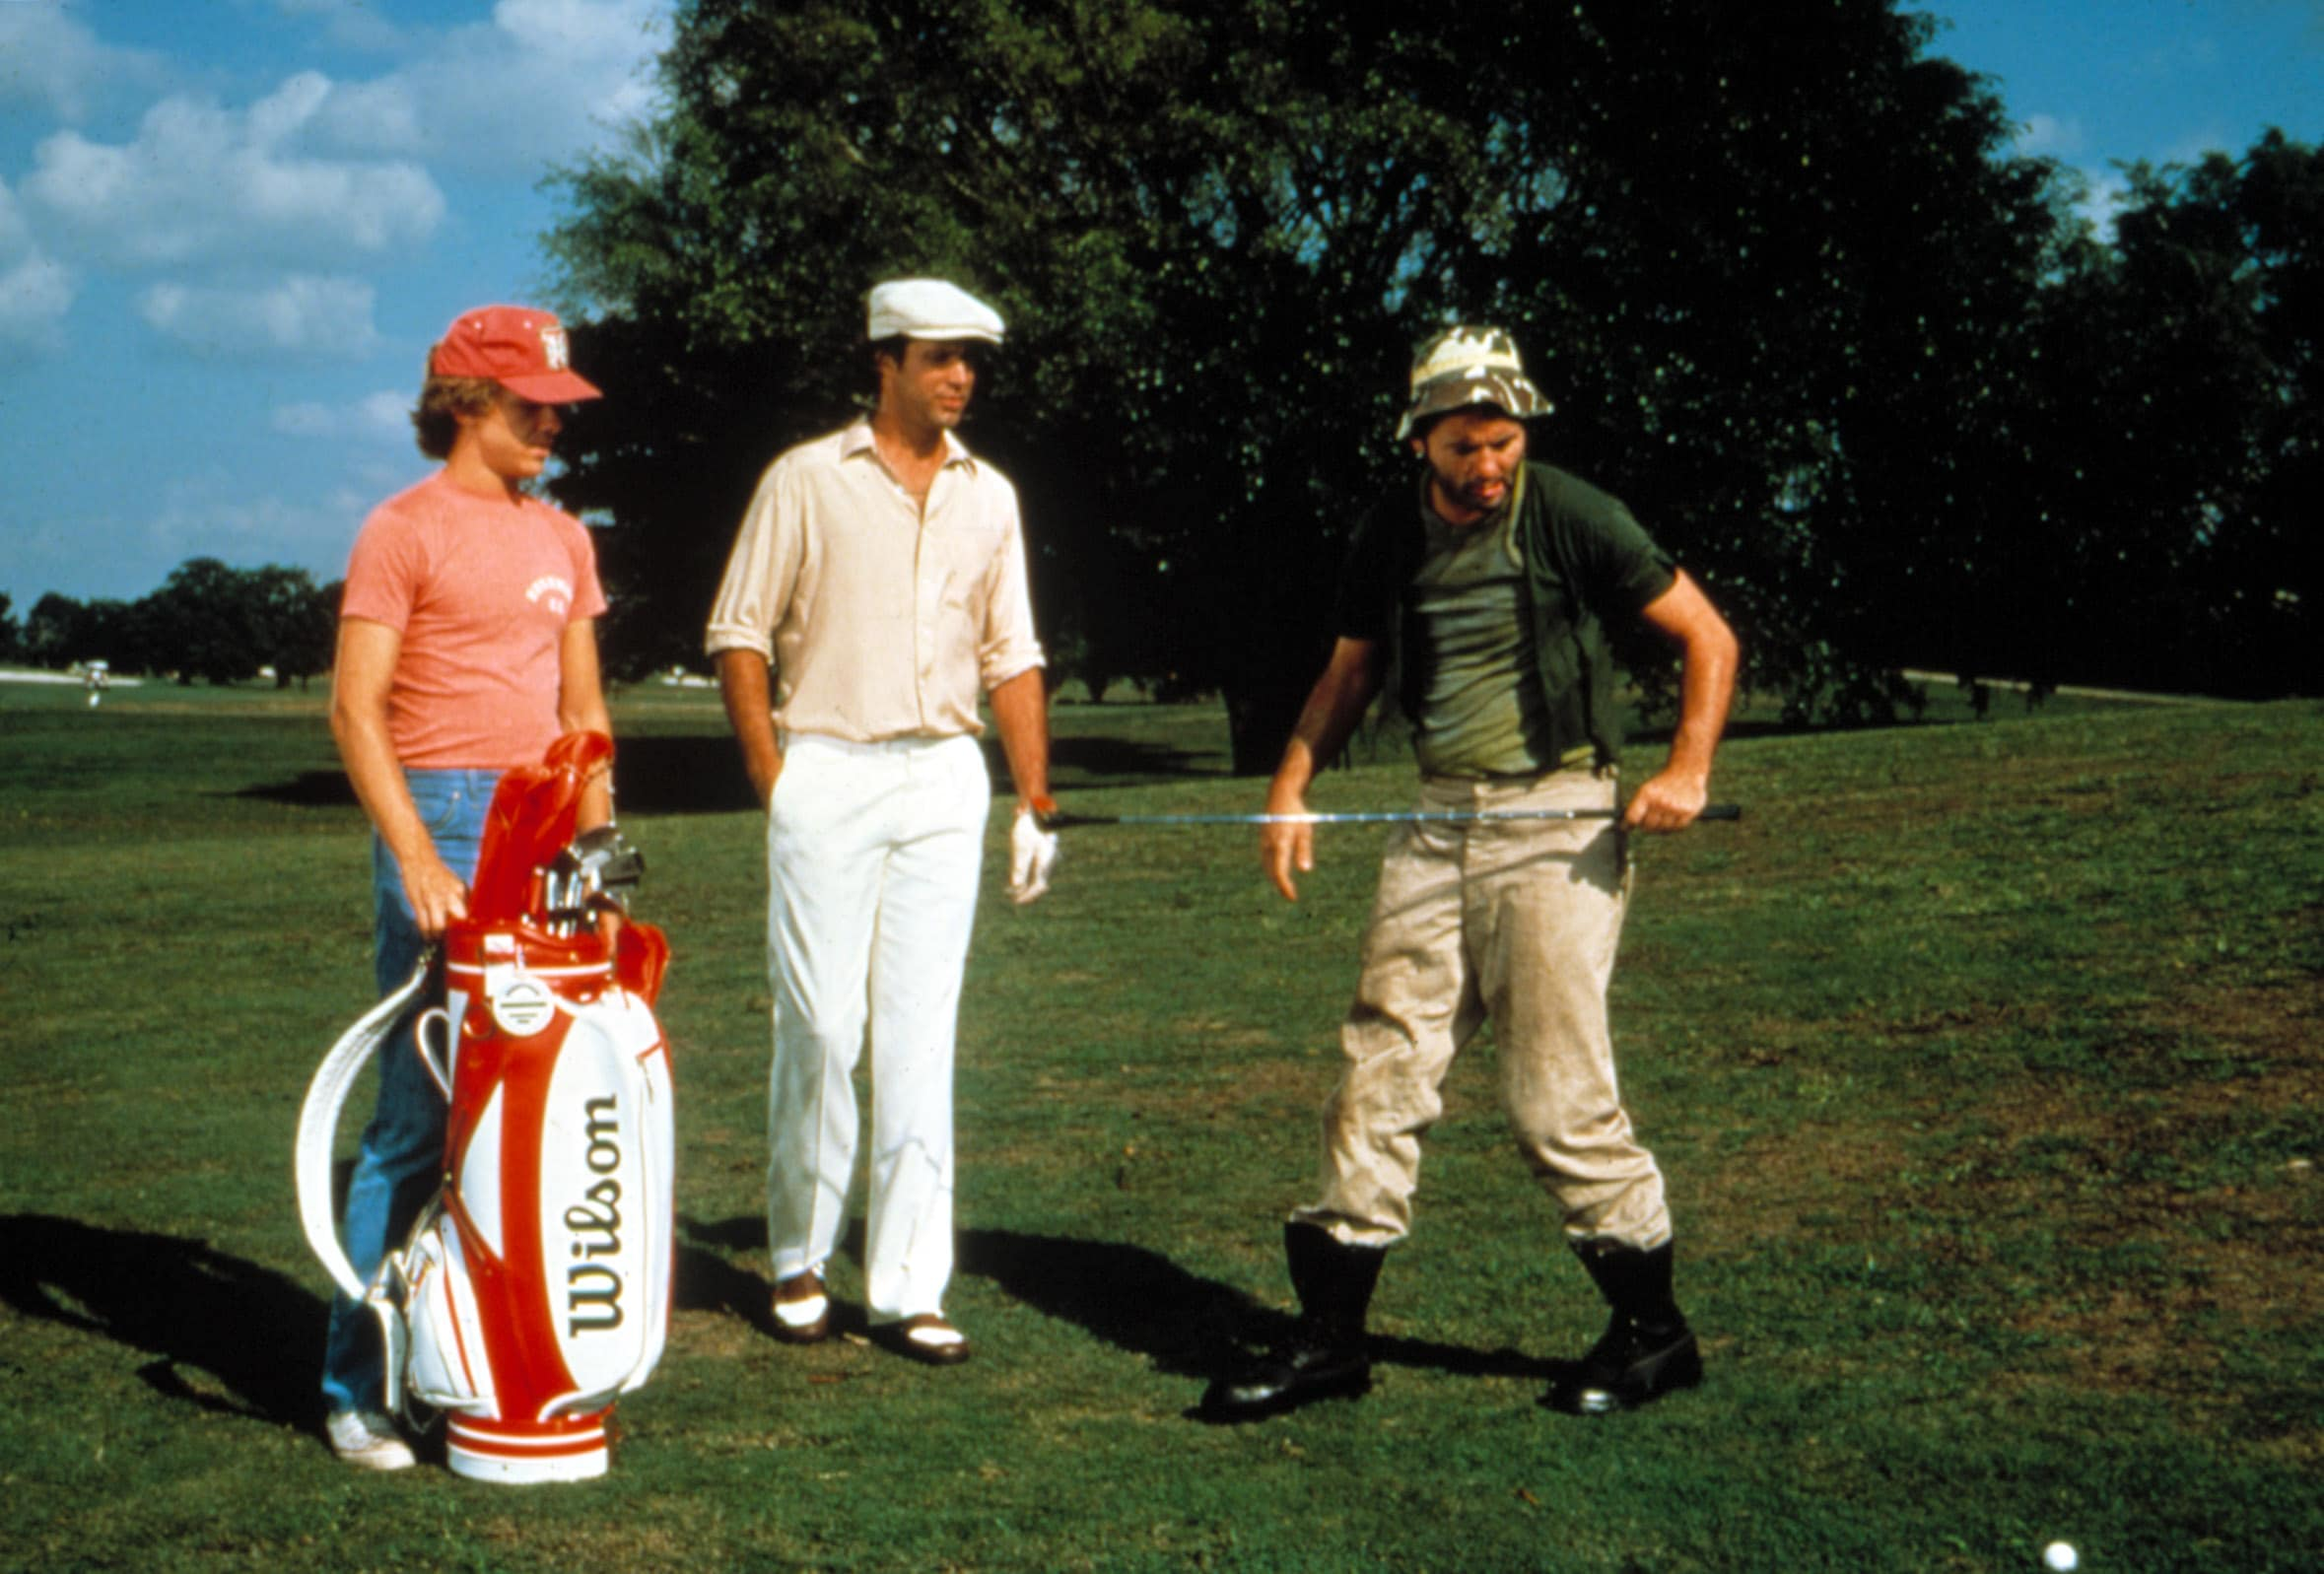 CADDYSHACK, Michael O'Keefe, Chevy Chase, Bill Murray, 1980